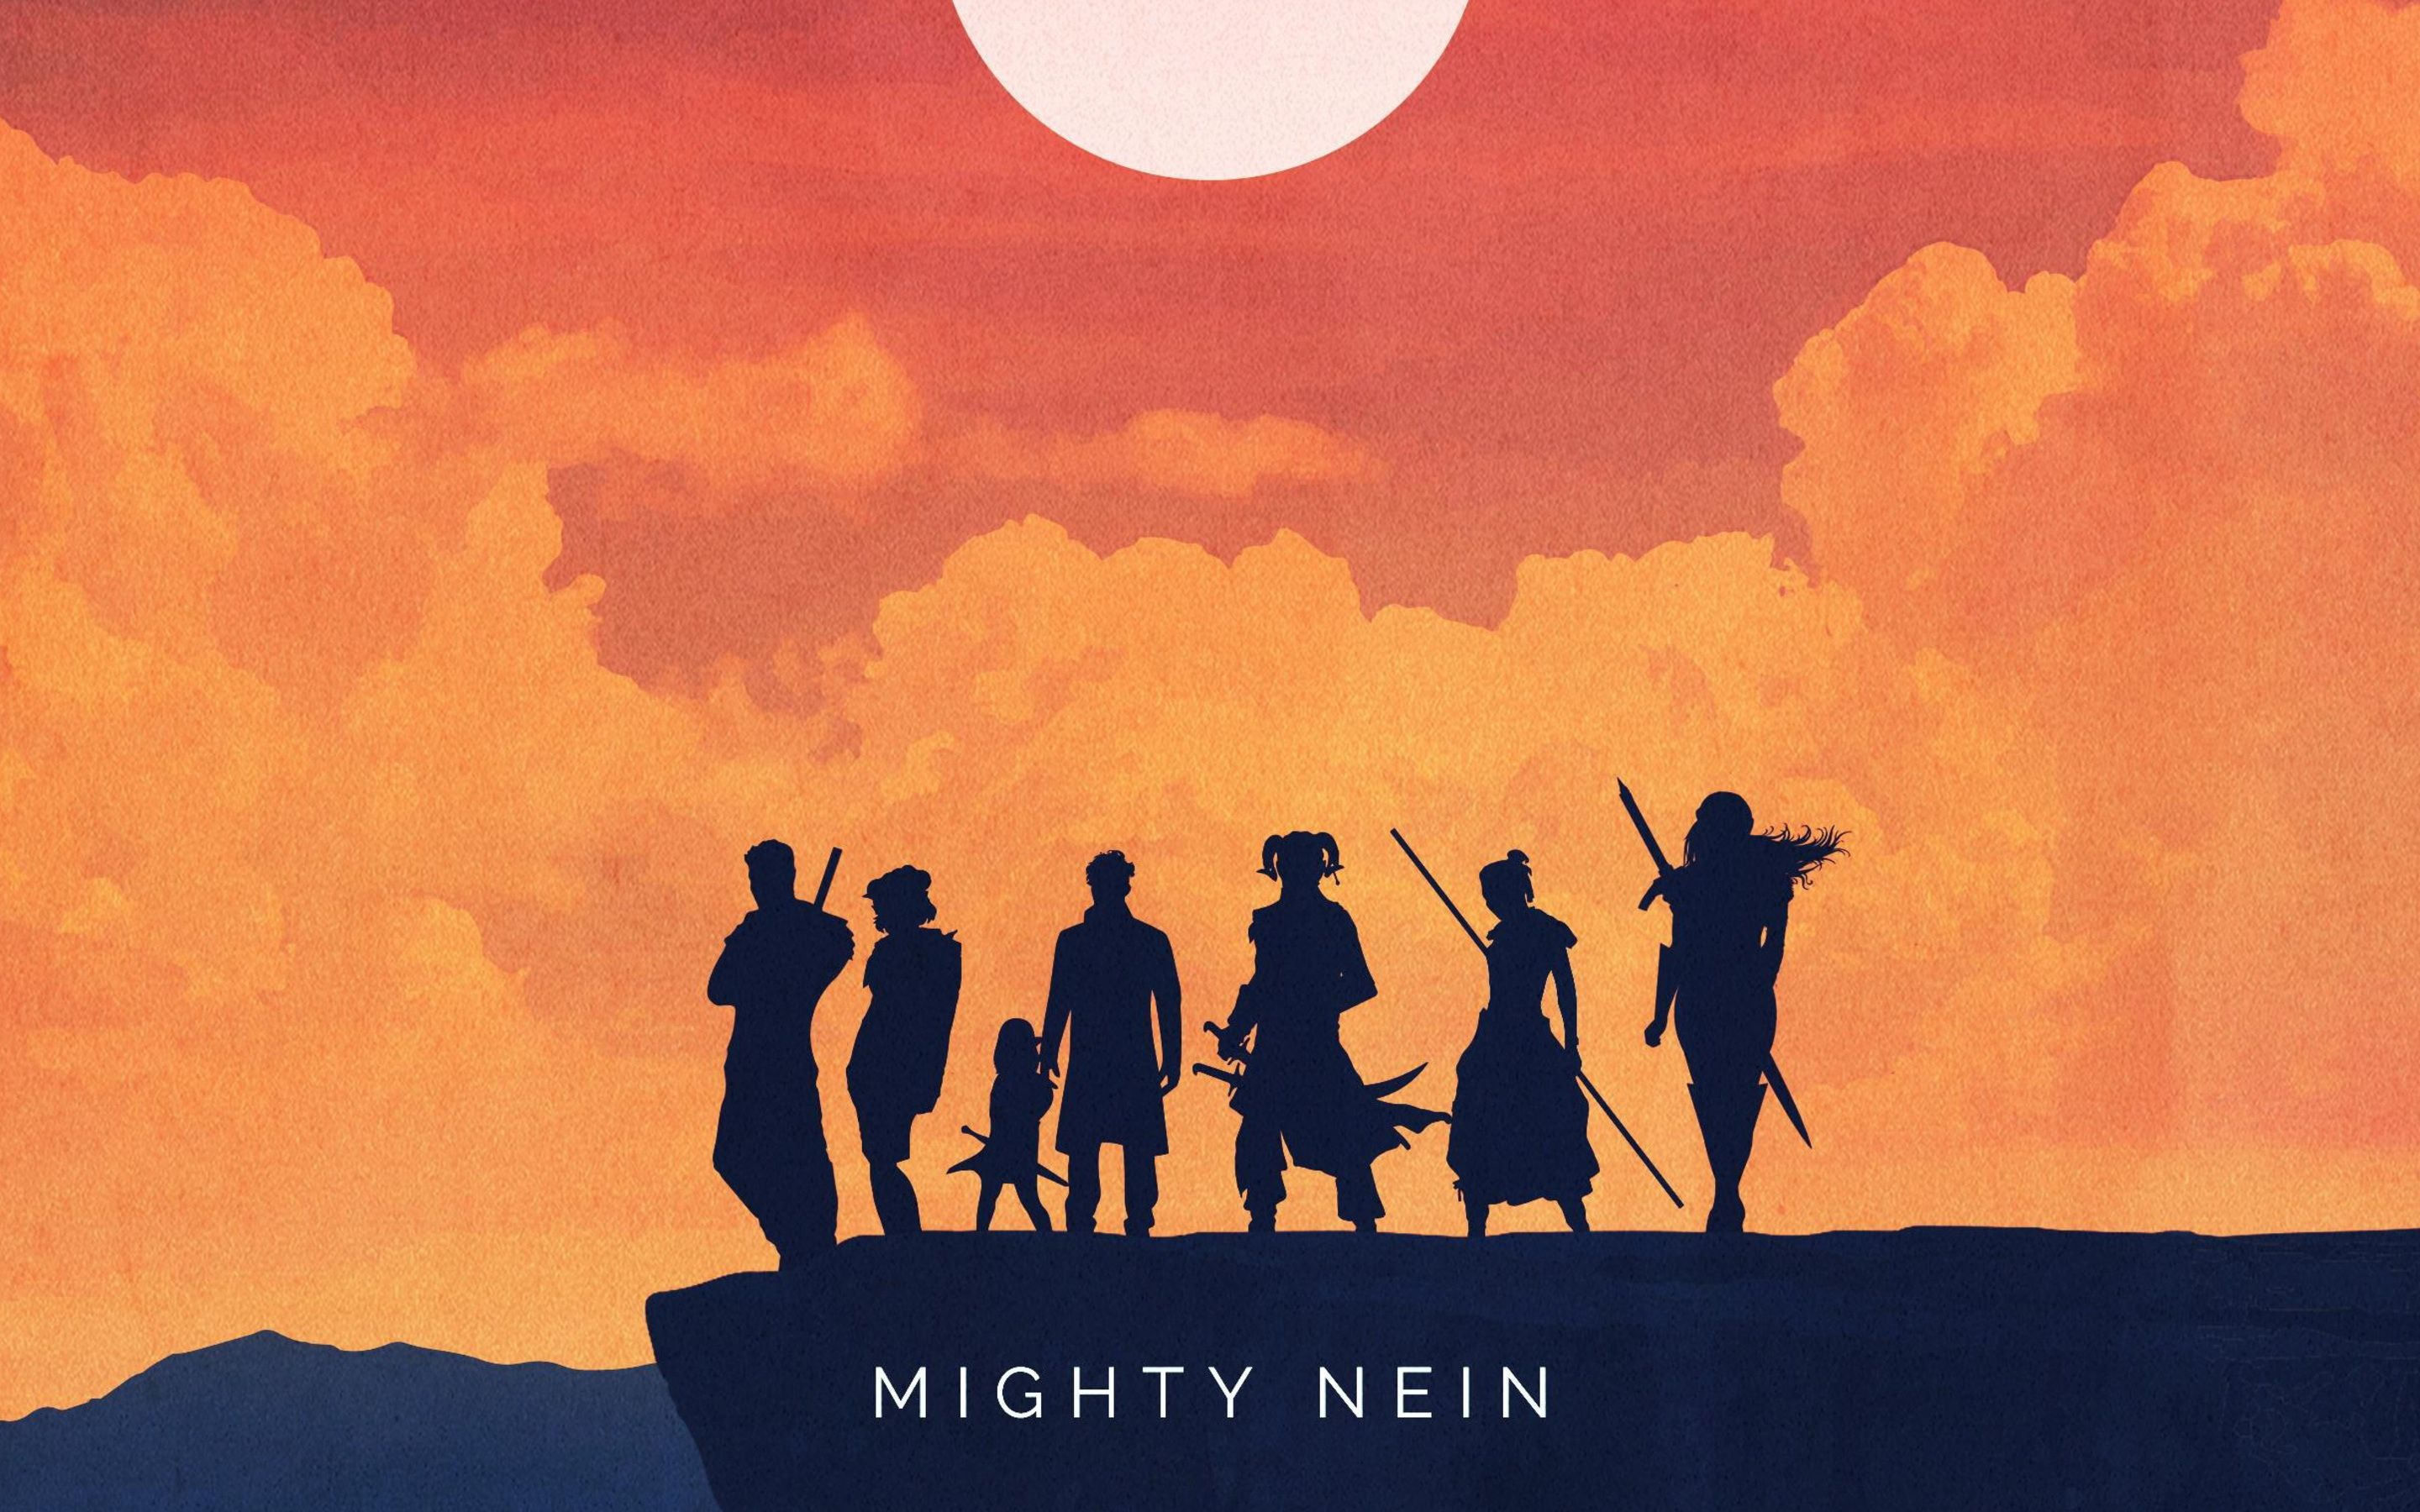 Mighty Nein Wallpapers Top Free Mighty Nein Backgrounds Wallpaperaccess